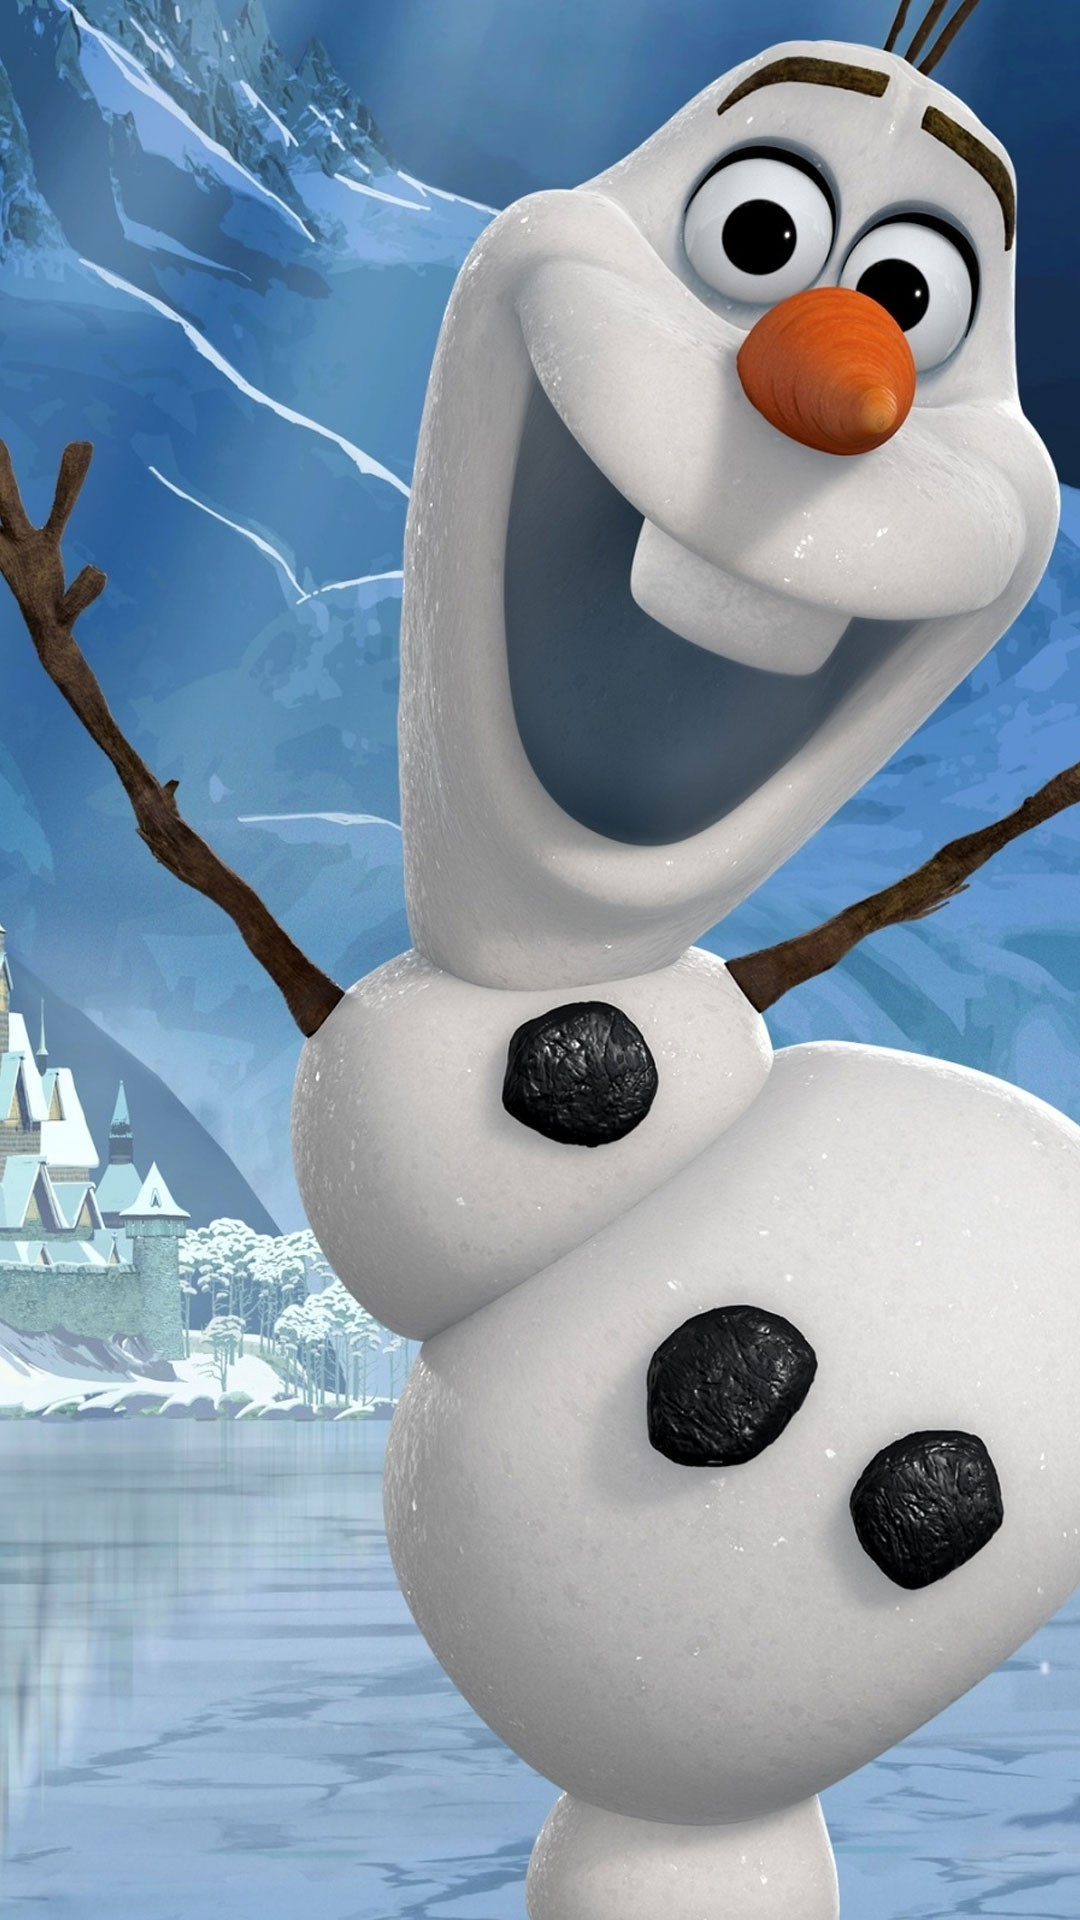 1920x1200 The Most Amazing Best Frozen Wallpapers On Web